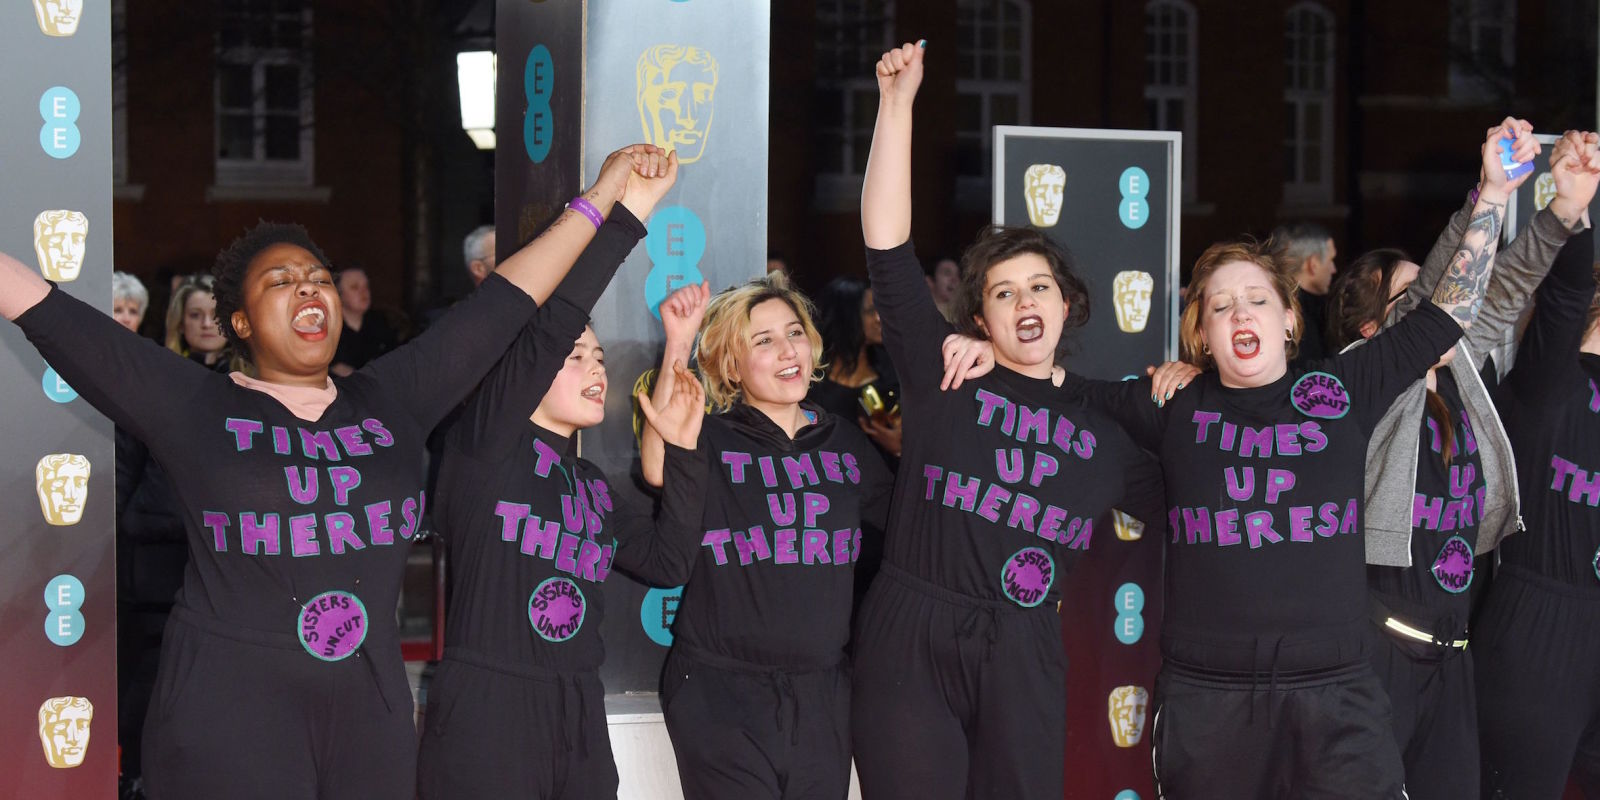 Protesters lie down in the middle of the BAFTA red carpet as part of Time'sUp movement